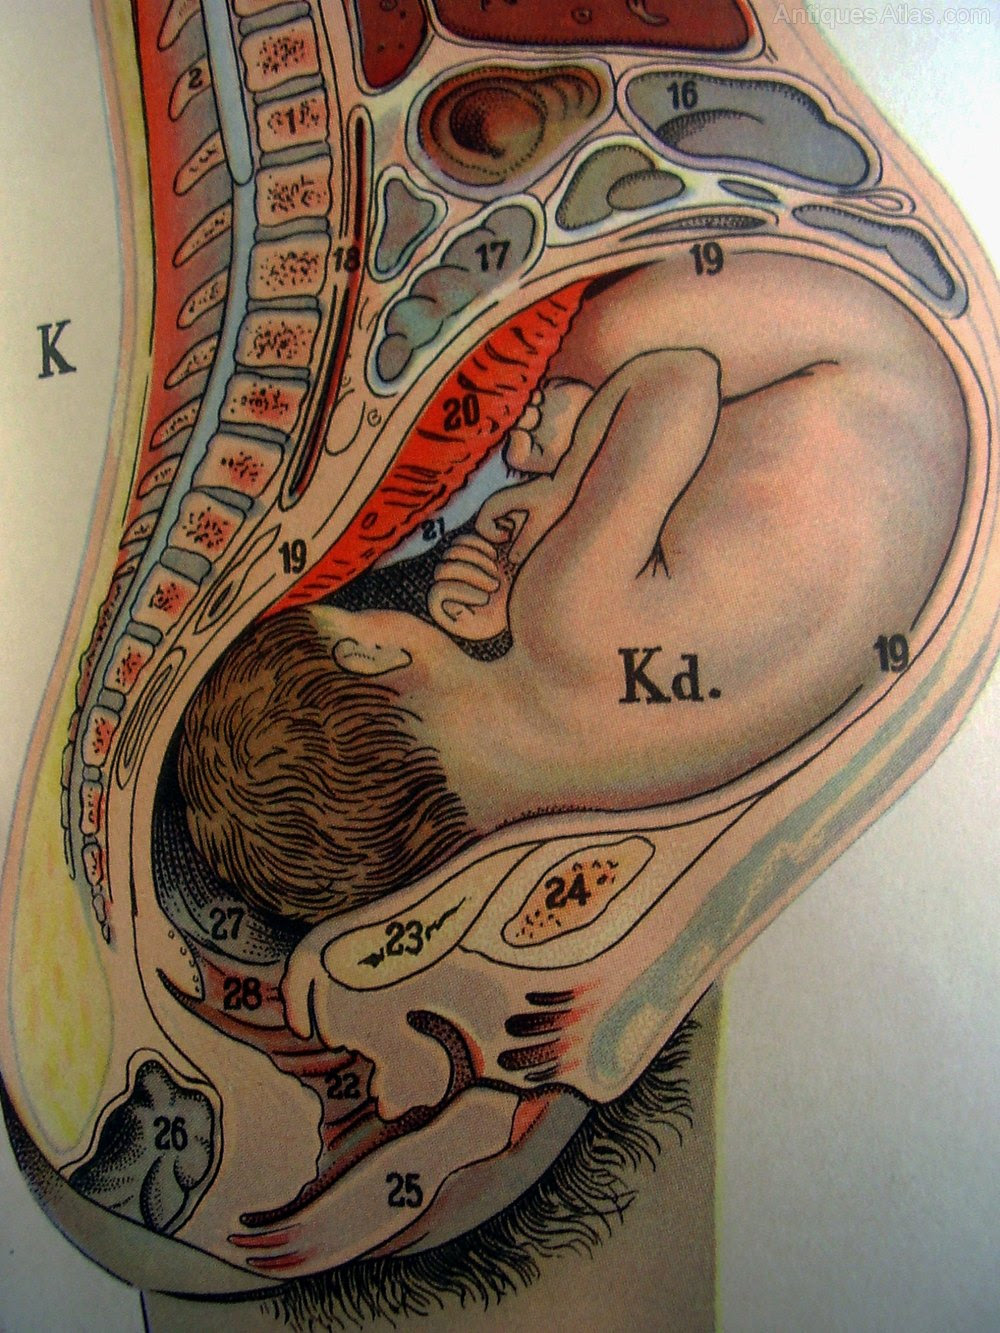 Antiques Atlas - Philips Model Of The Human Female Body